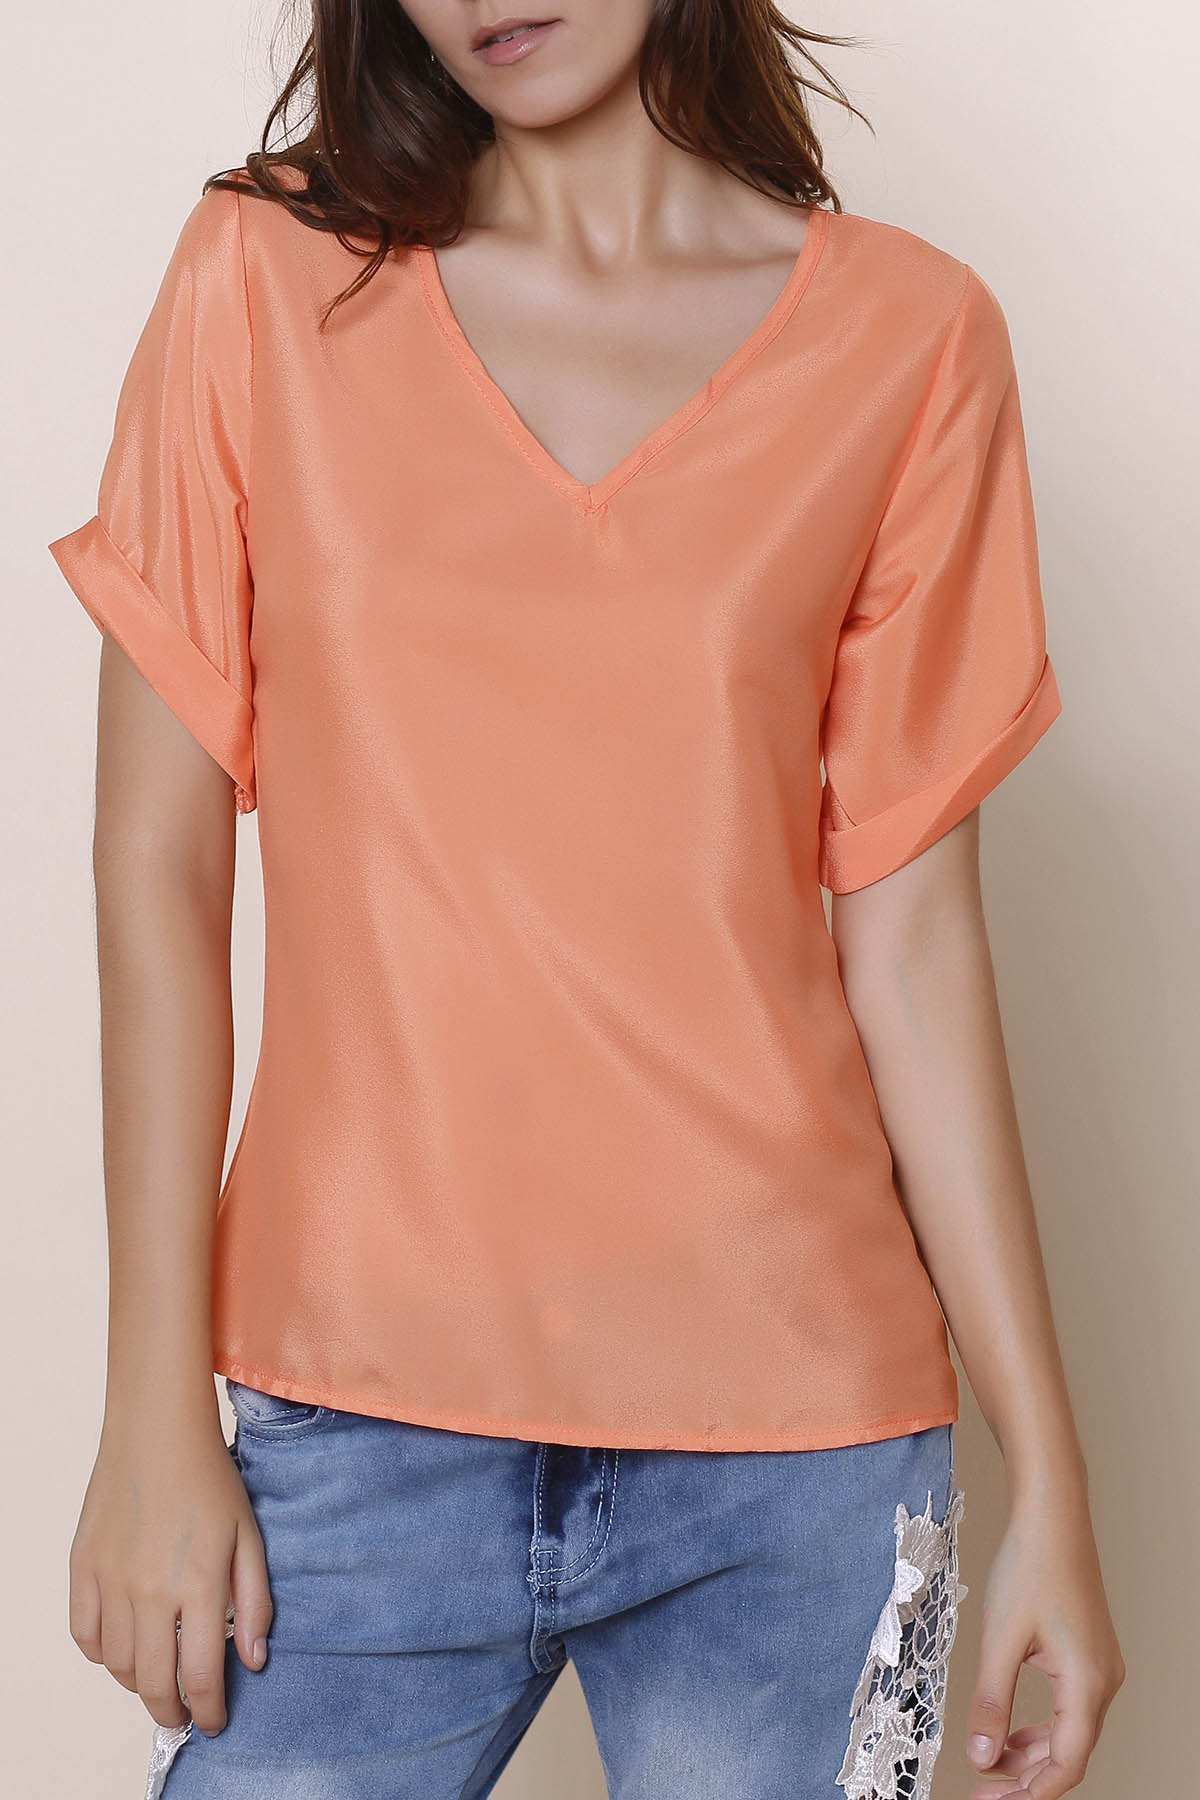 Orangepink simple v neck solid color short sleeve chiffon for Plain colored v neck t shirts